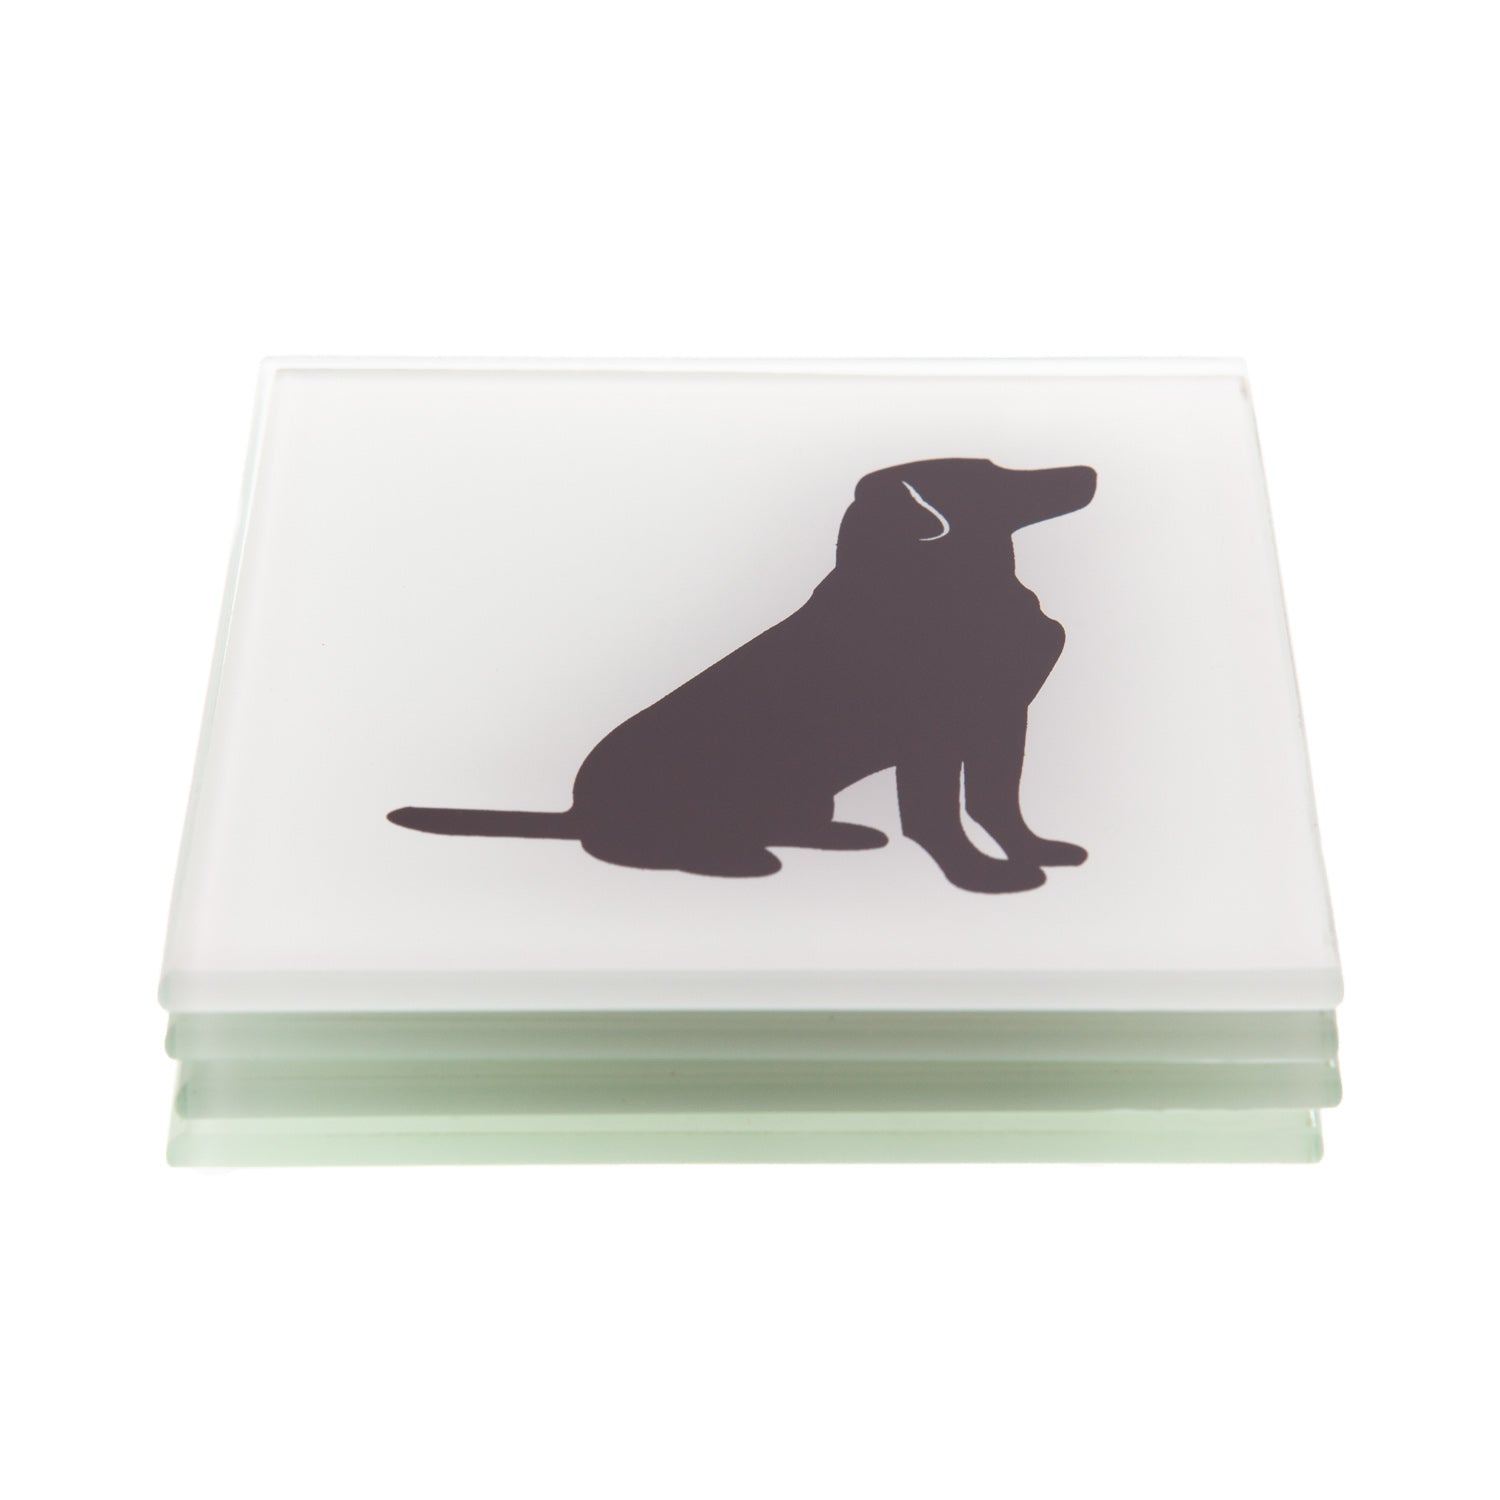 Dog Lover Gifts available at Dog Krazy Gifts - Sitting Black Labrador Glass Coasters- Part of the Labrador range available from Dog Krazy Gifts